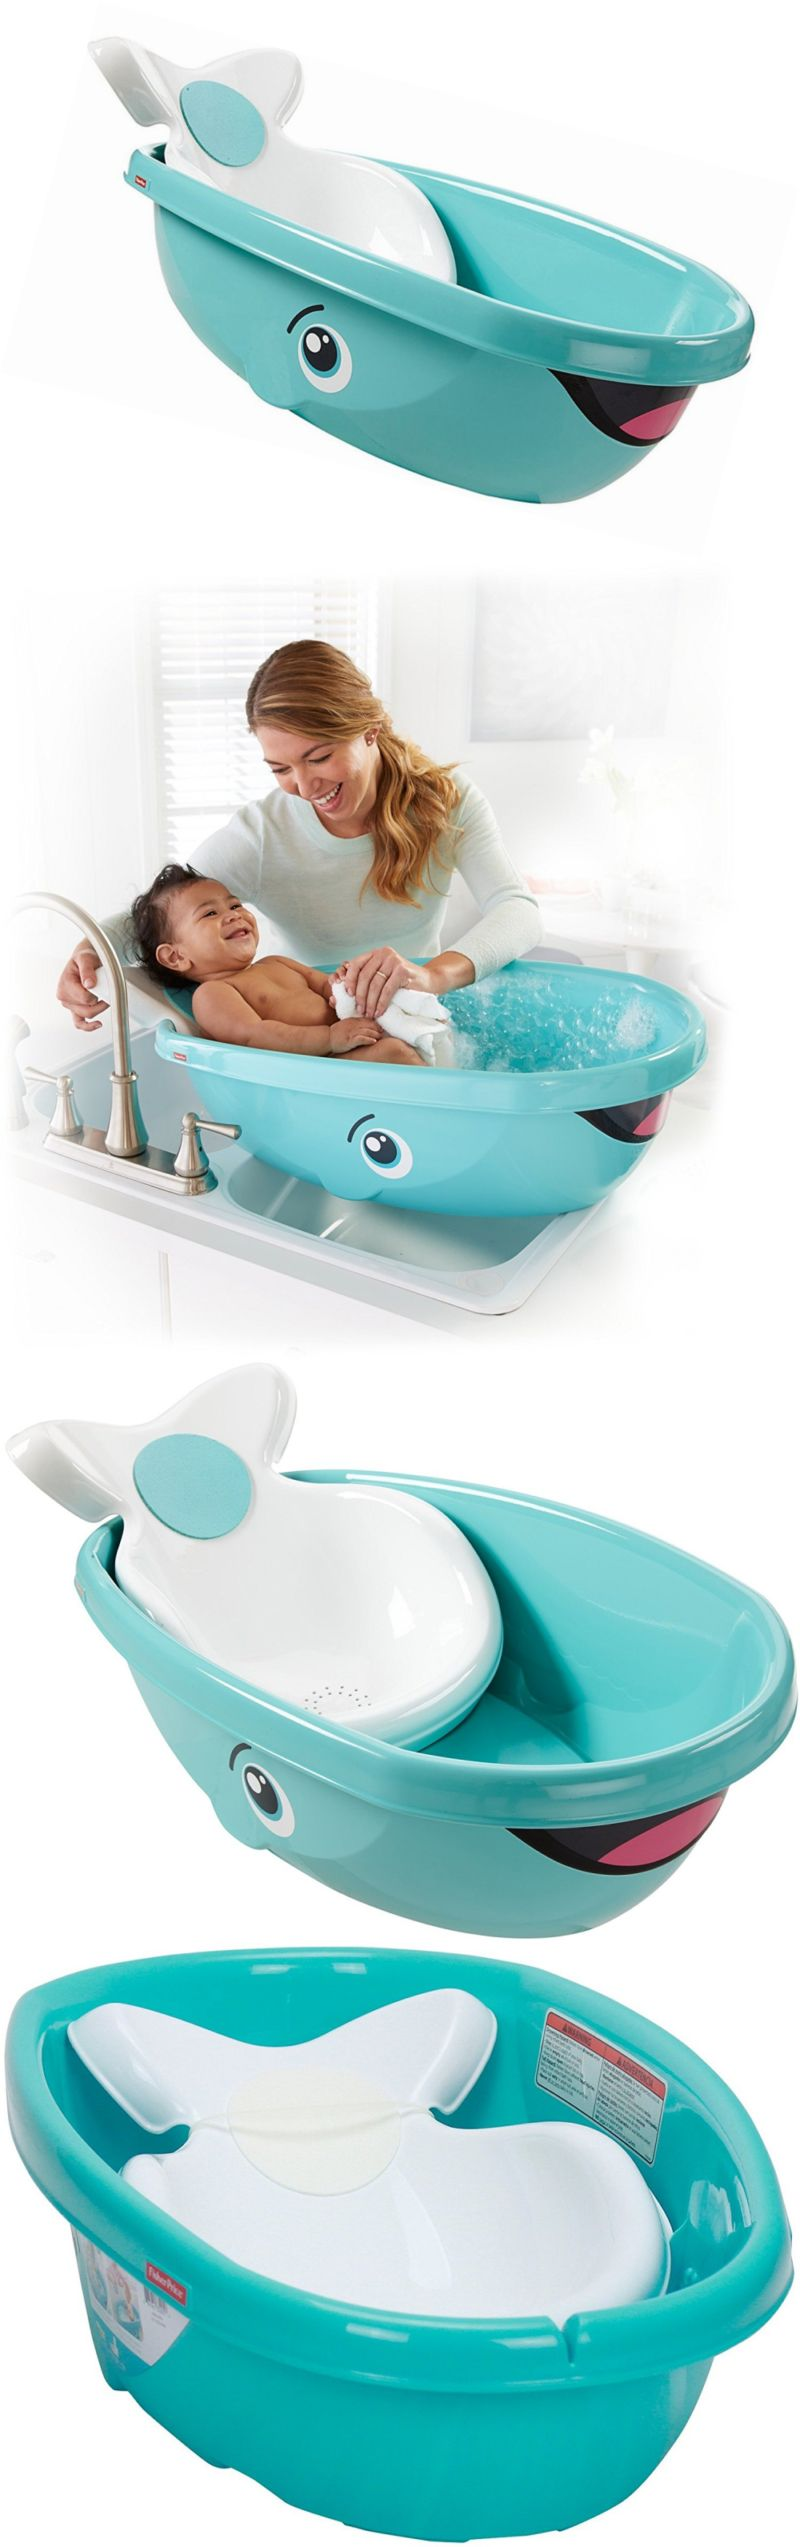 Bath Tubs 113814: Baby Bath Tub Bathtub Whale Safety Anti Slip ...